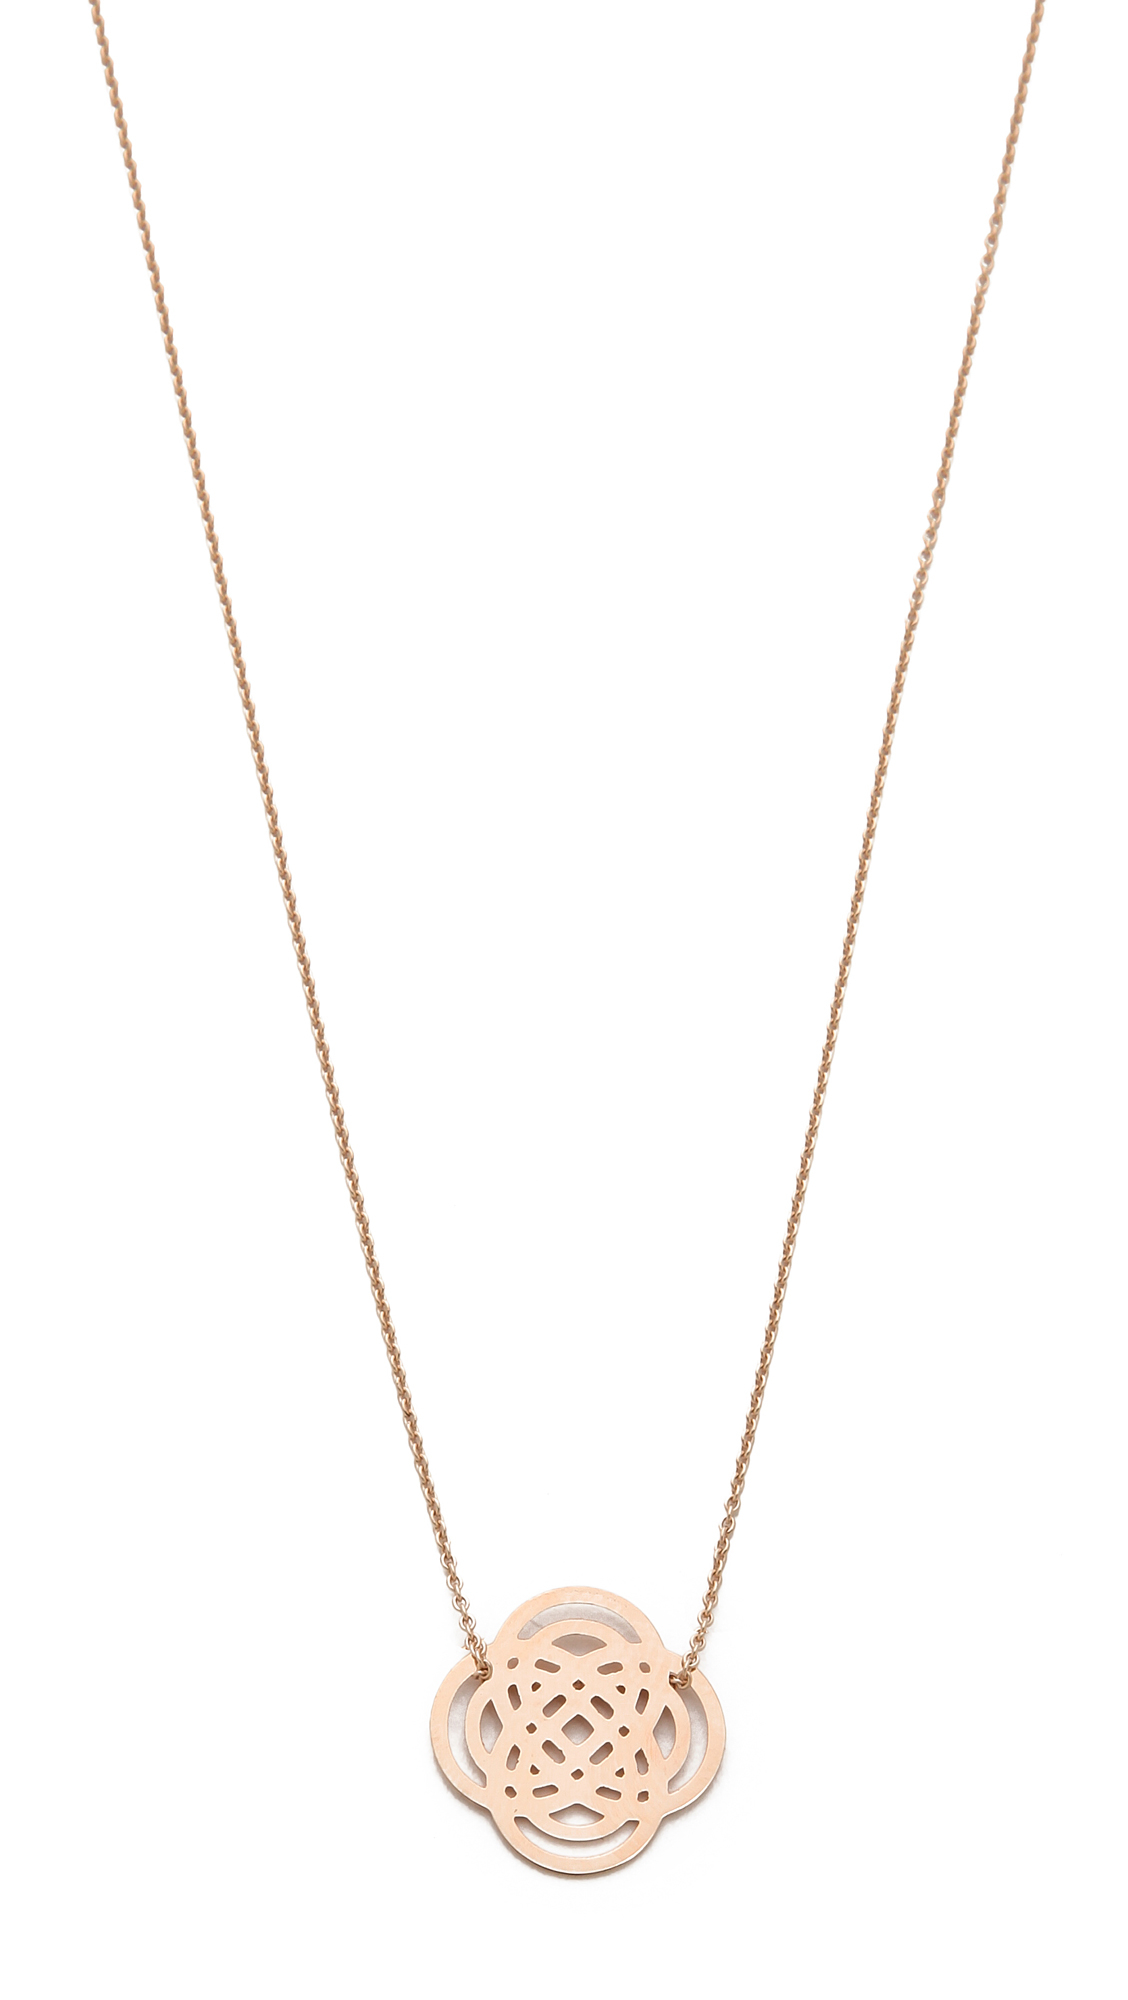 iconic charlotte com purity by lucky the theiconic australia online lotus au necklace